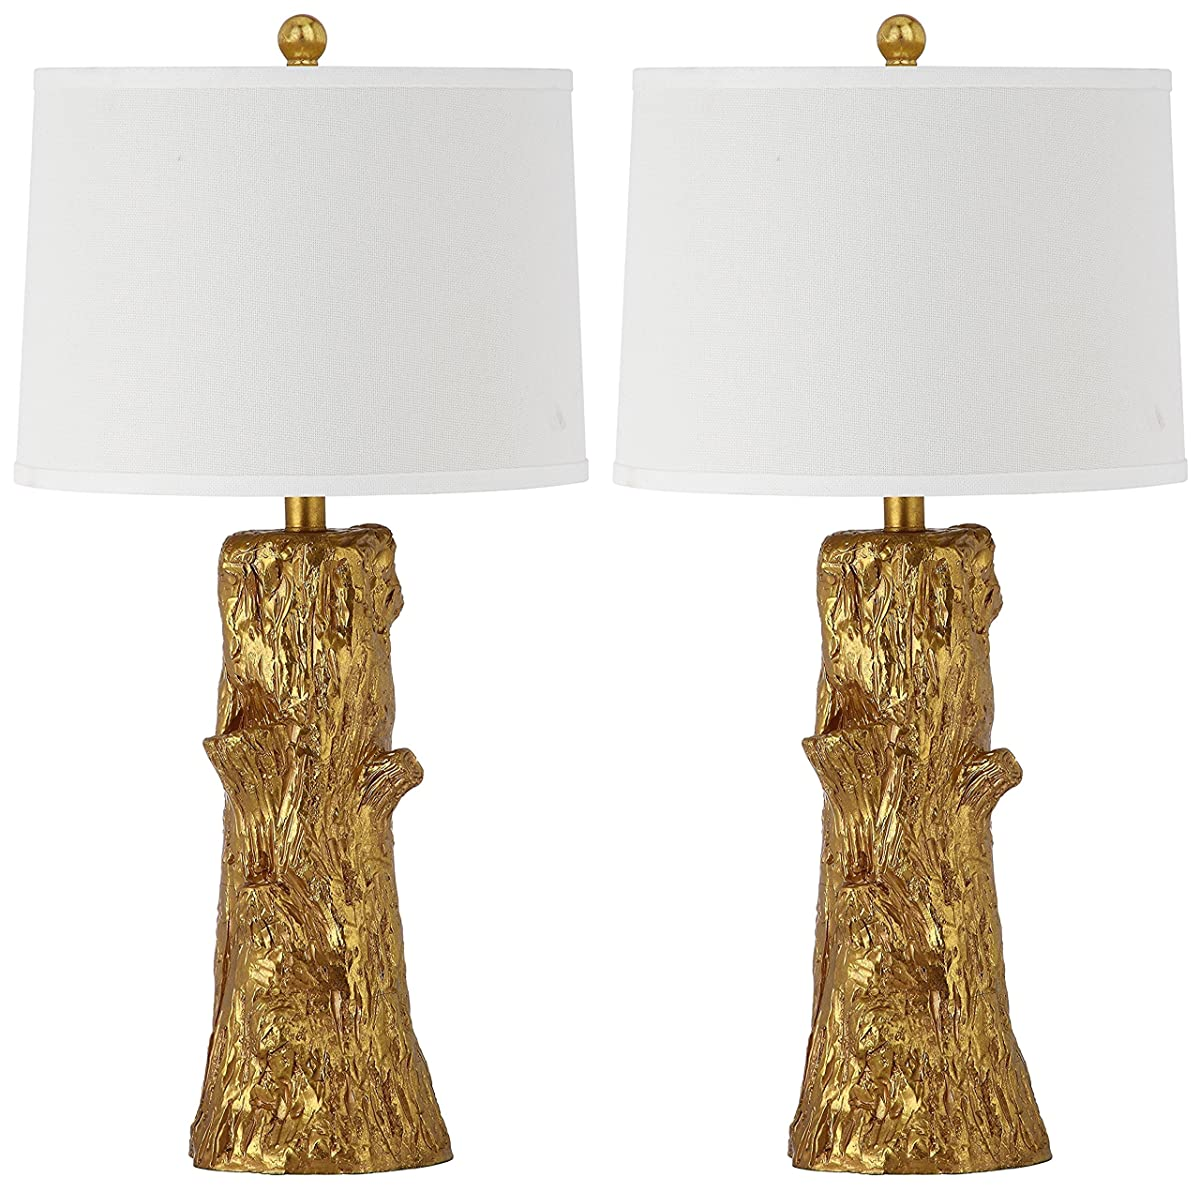 Safavieh Lighting Collection Arcadia Faux Bois Gold 28.5-inch Table Lamp (Set of 2)